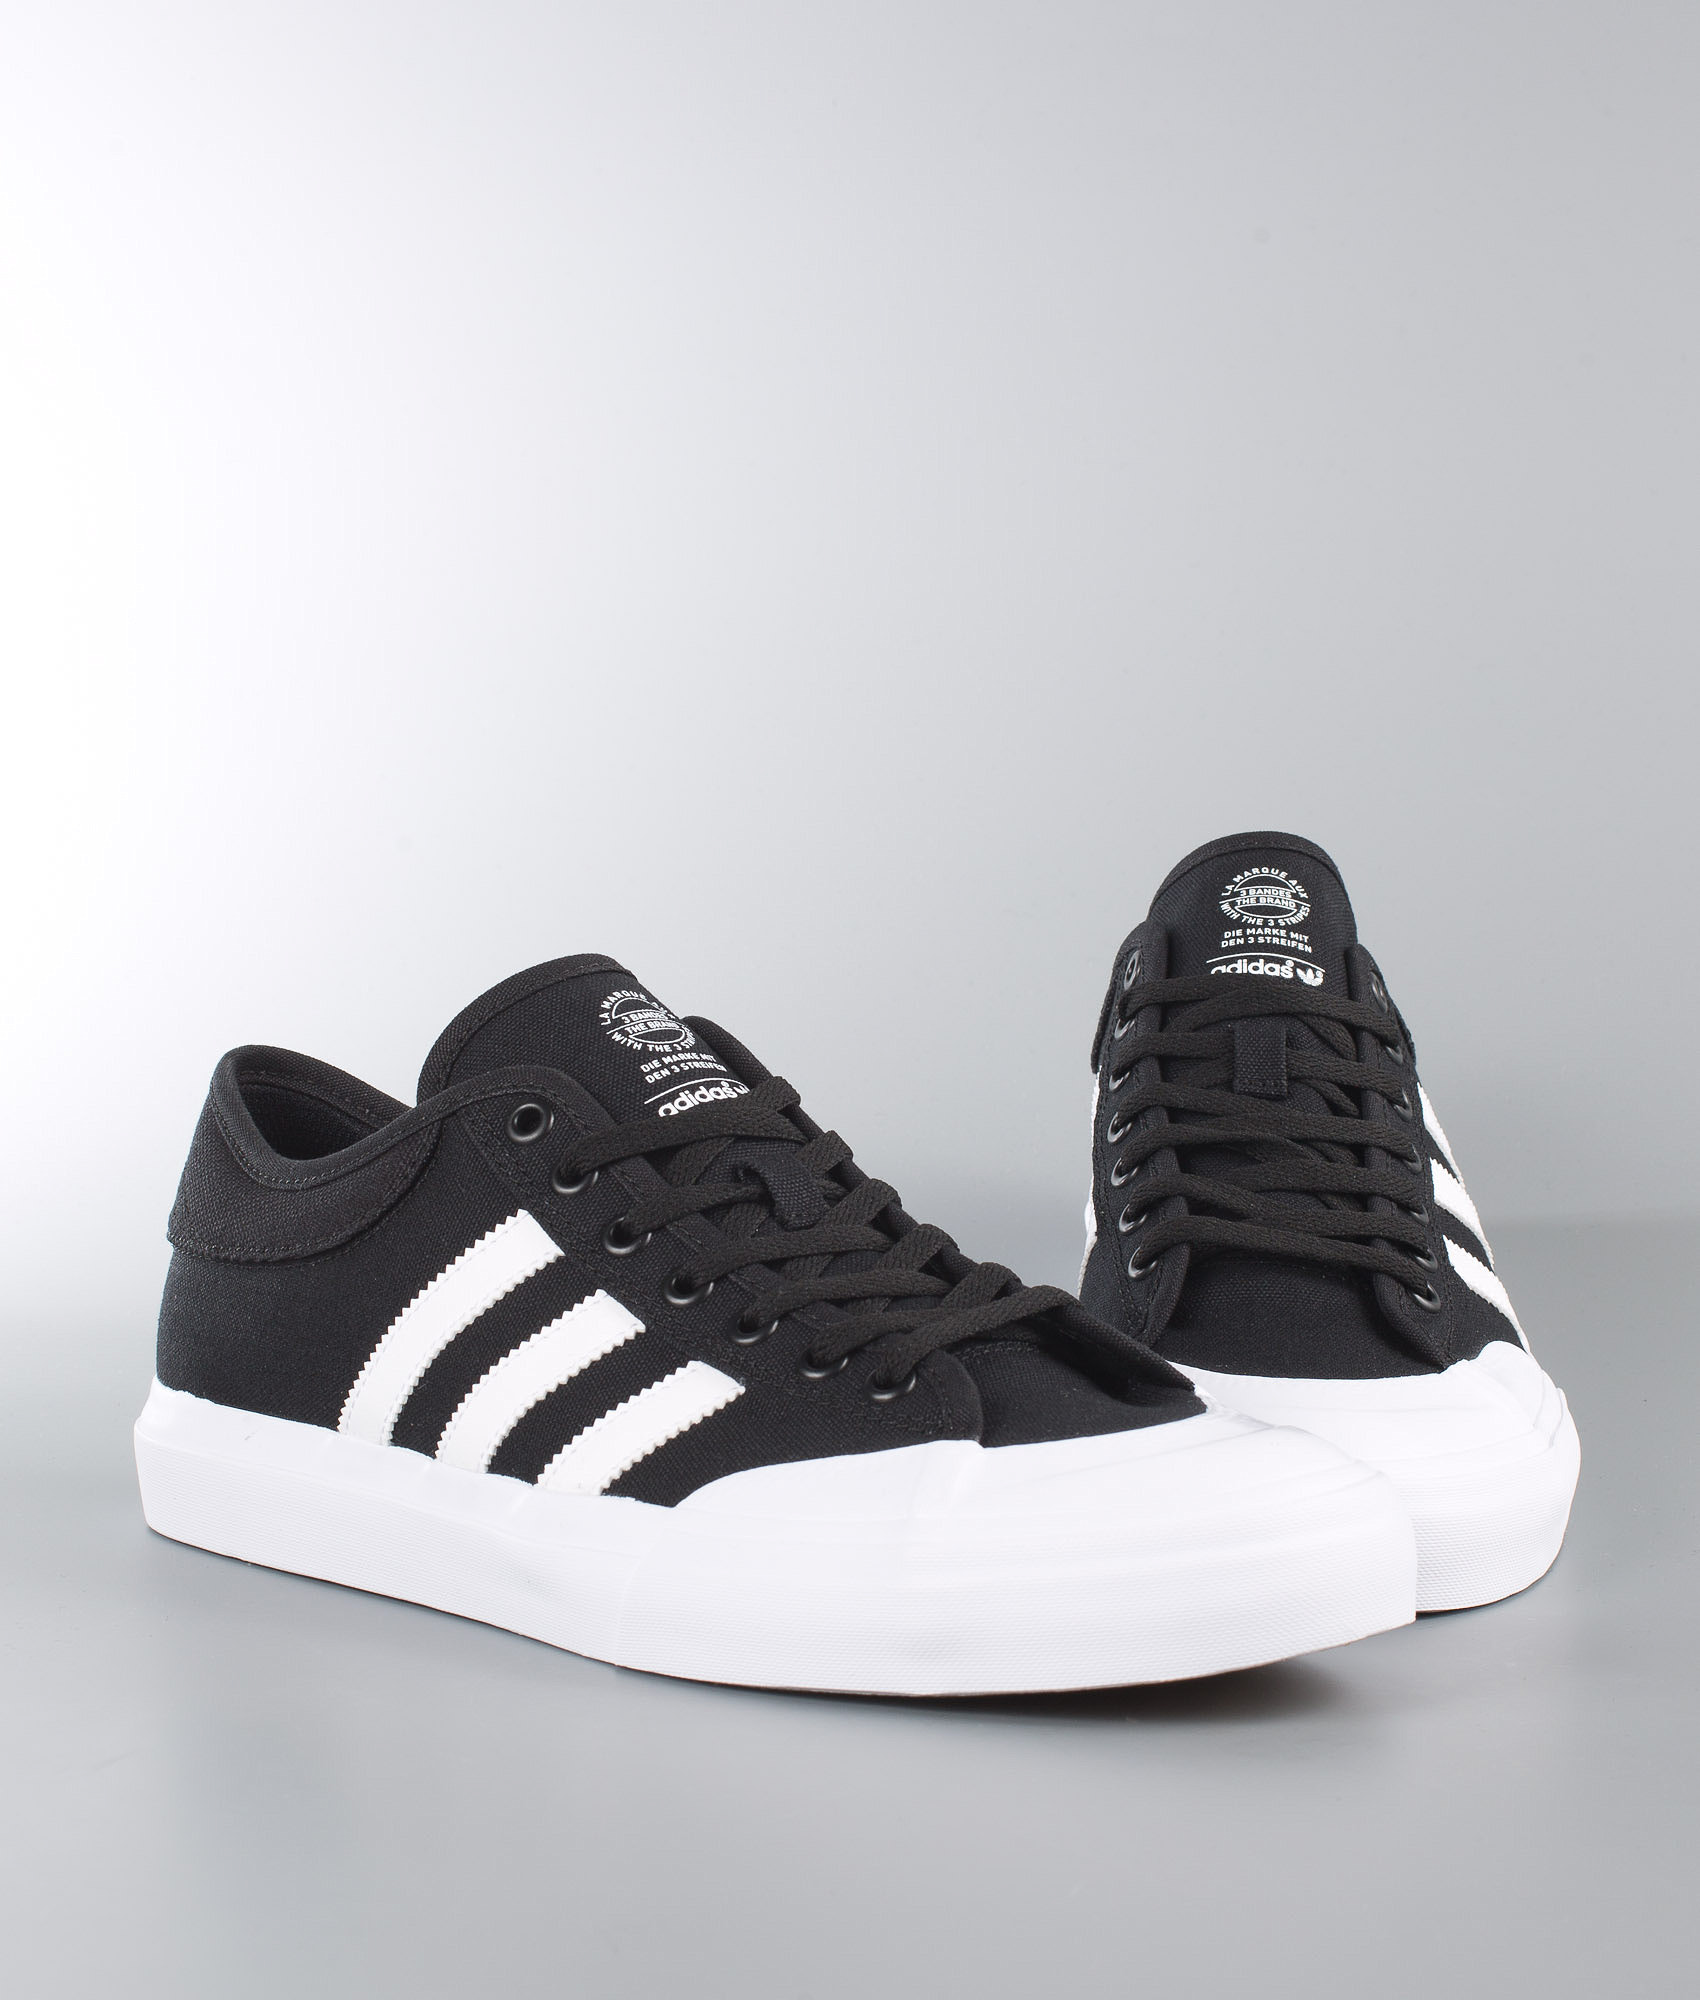 143df6624f15 Adidas Originals Matchcourt Shoes Core Black Footwear White Core ...